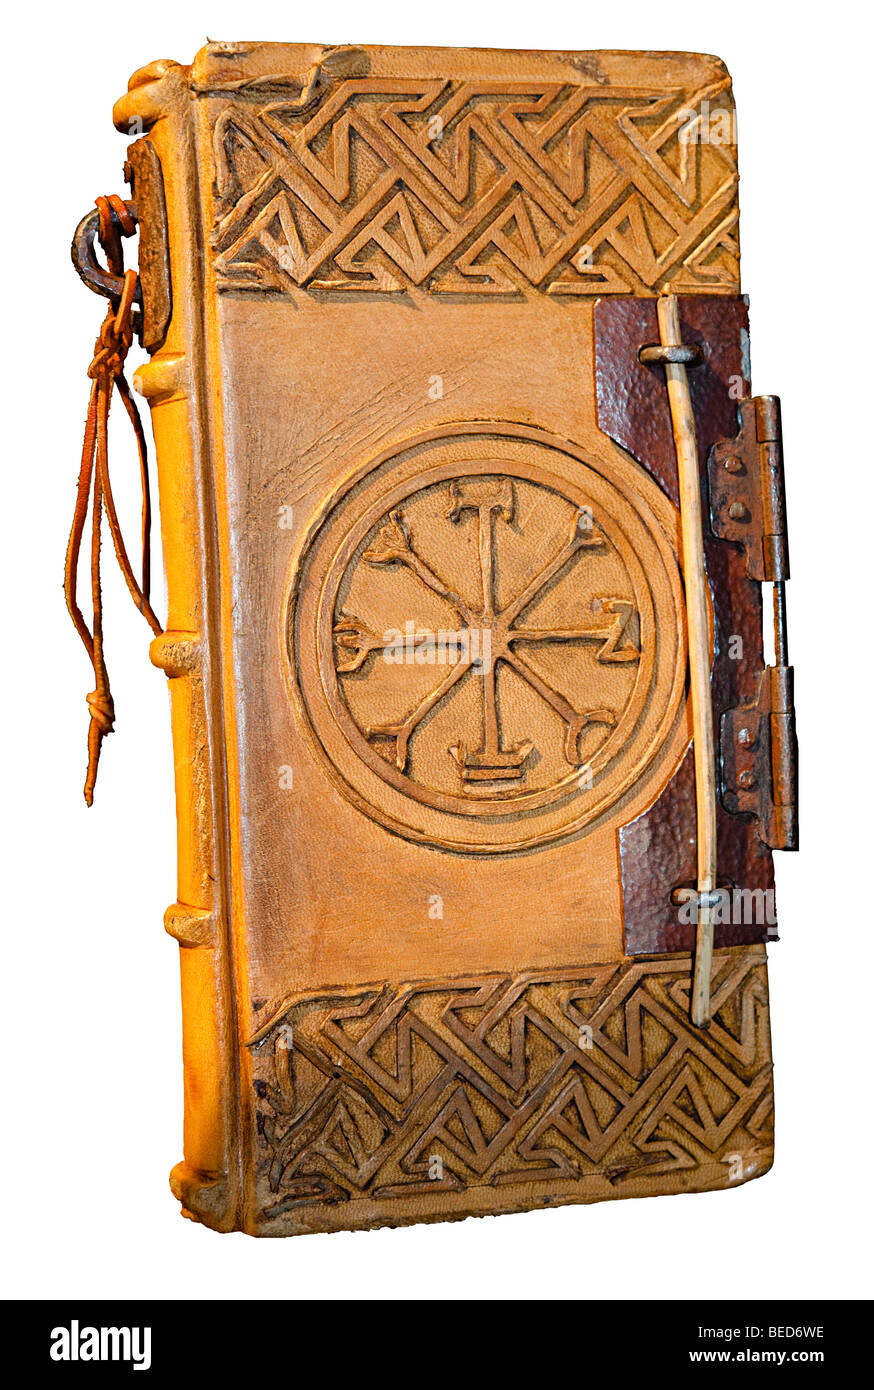 Book of Spells  movie prop used in the film Willow exhibited at the NASA Space Center Houston Texas USA - Stock Image